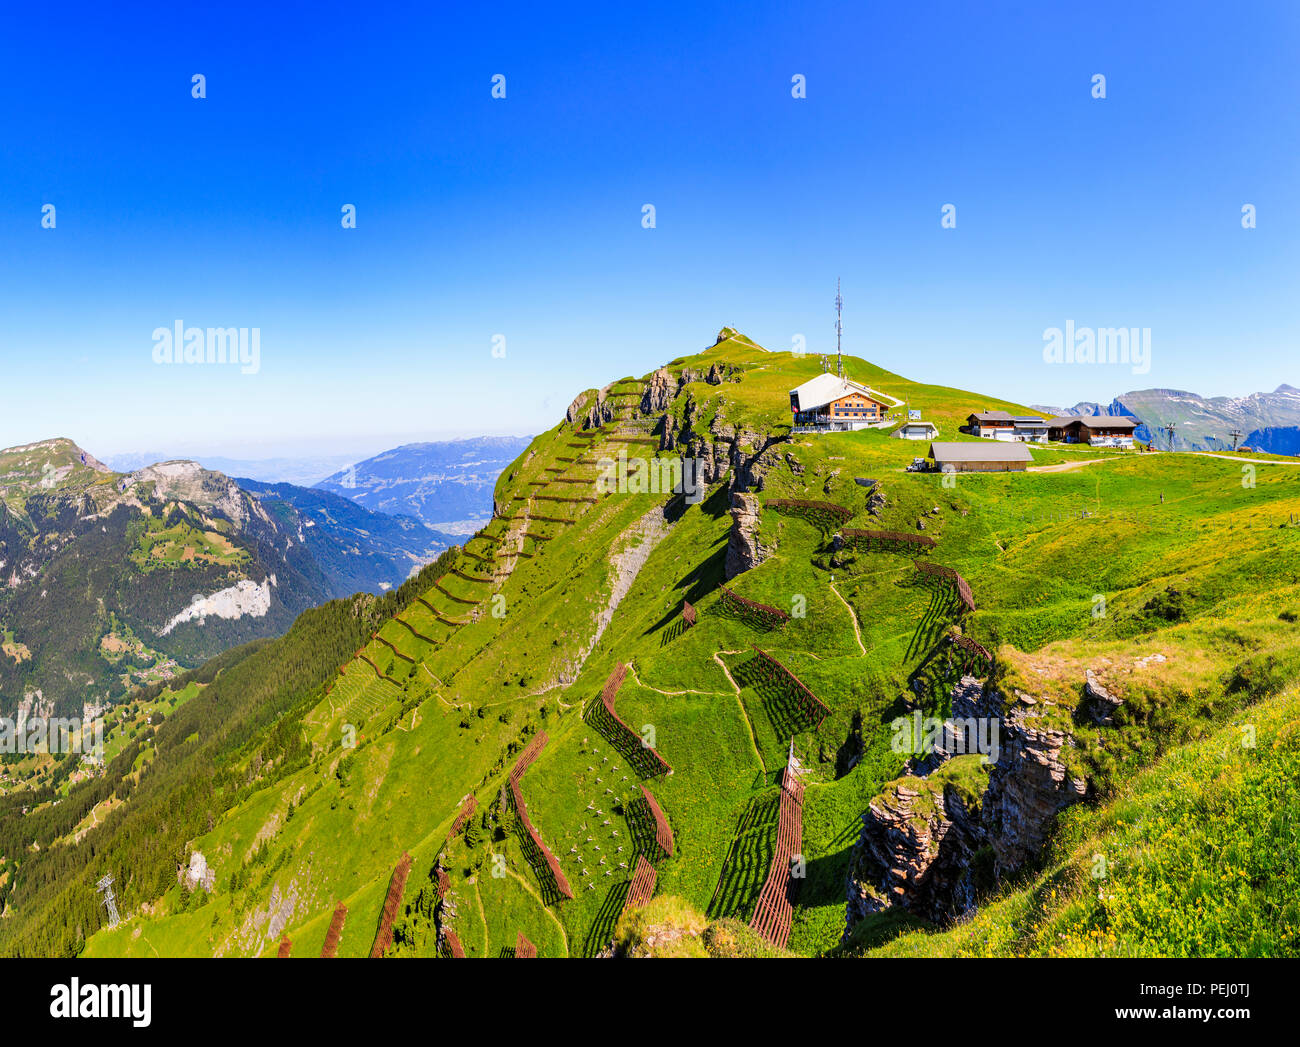 Maennlichen cable car station above Wengen and the Lauterbrunnen Valley, Jungfrau region and path to the Royal View, Bernese Oberland, Switzerland - Stock Image